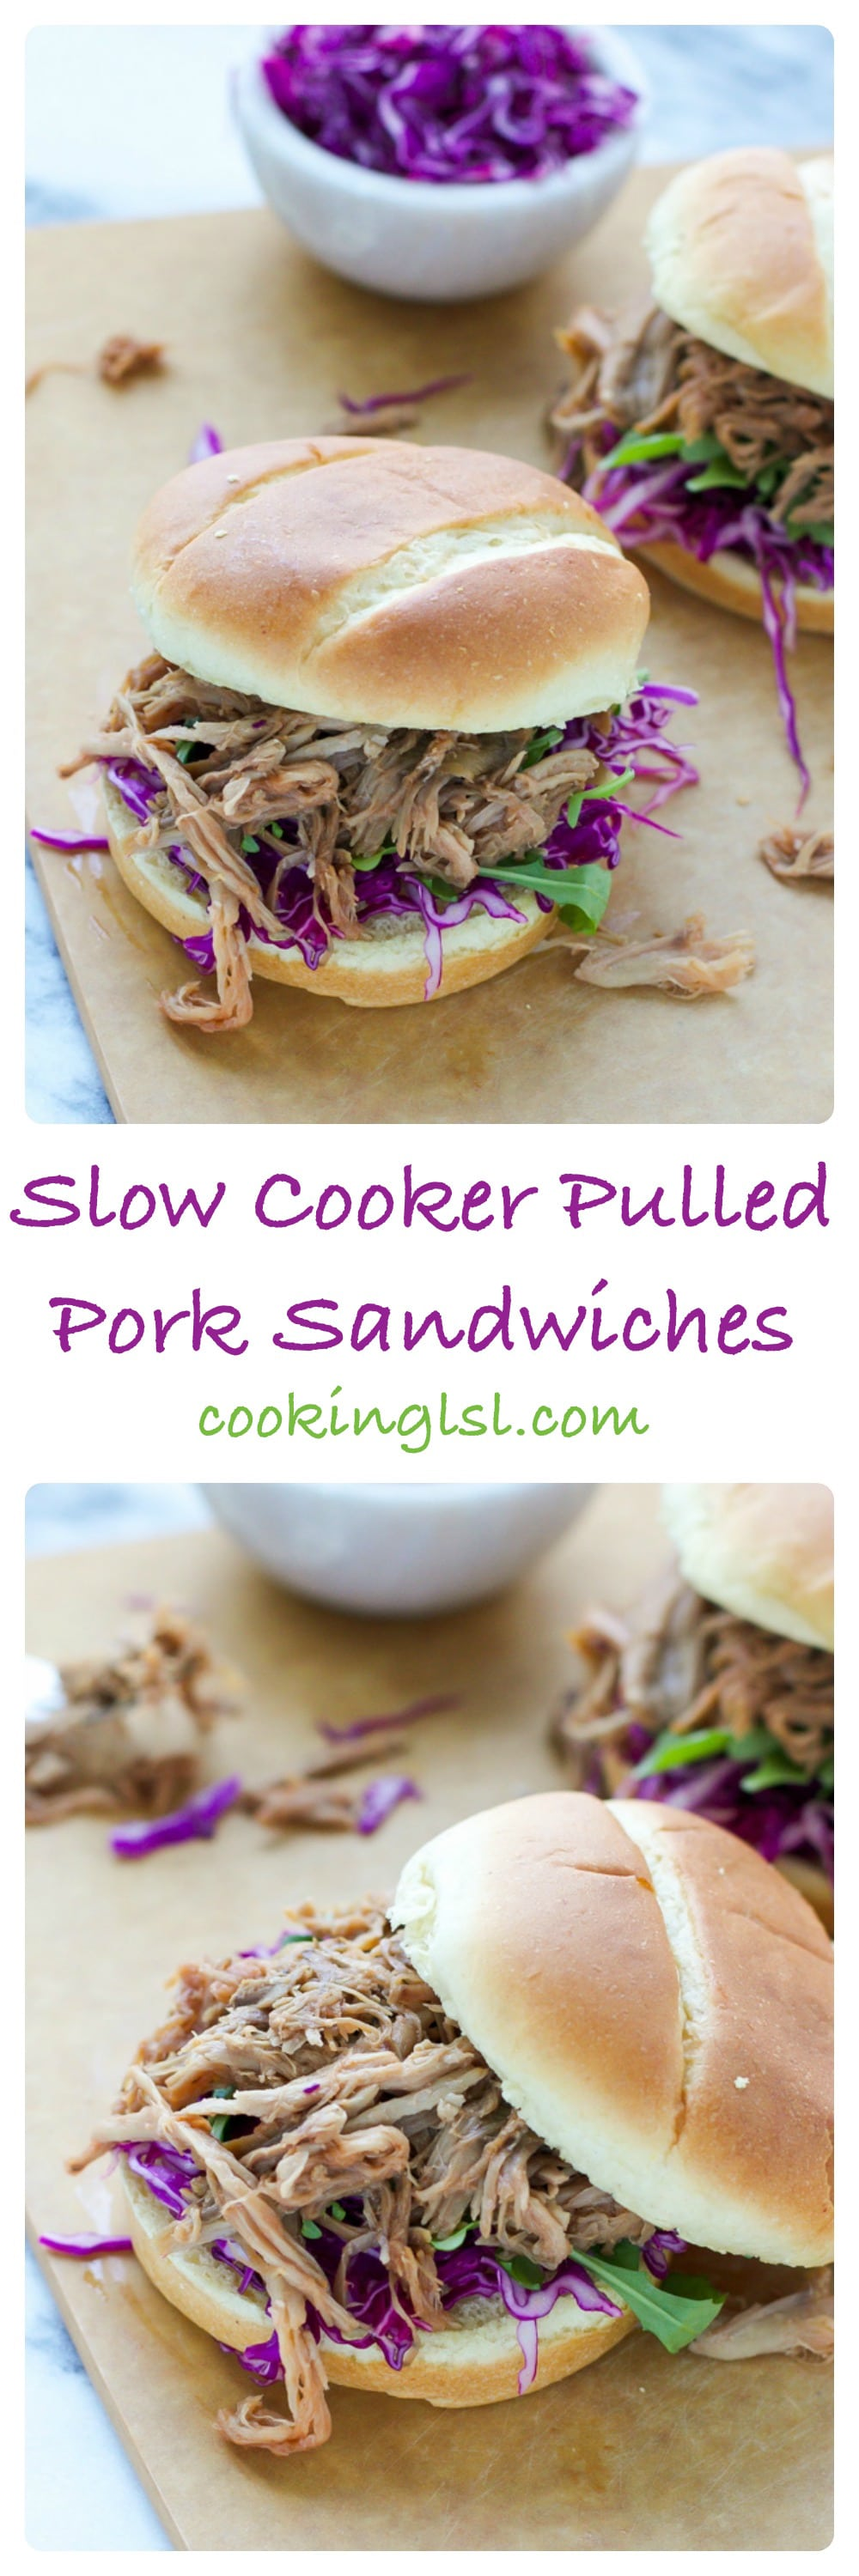 slow-cooker-pulled-pork-sandwiches